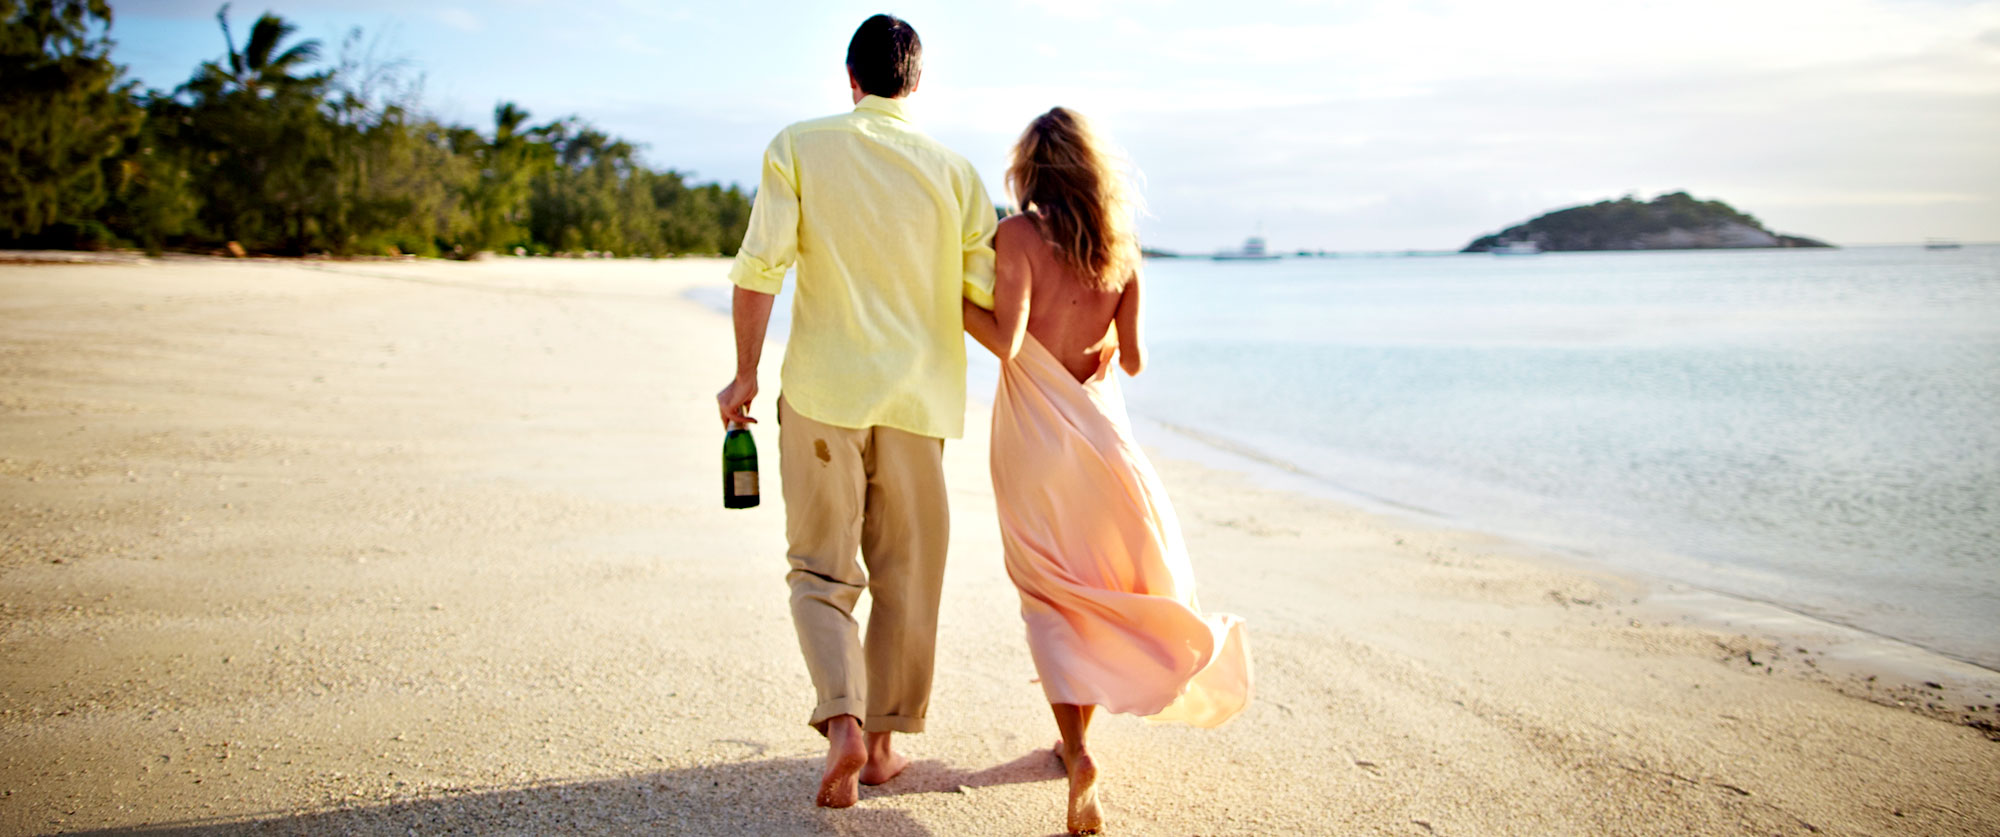 Australia Honeymoon Package - Lizard Island Resort